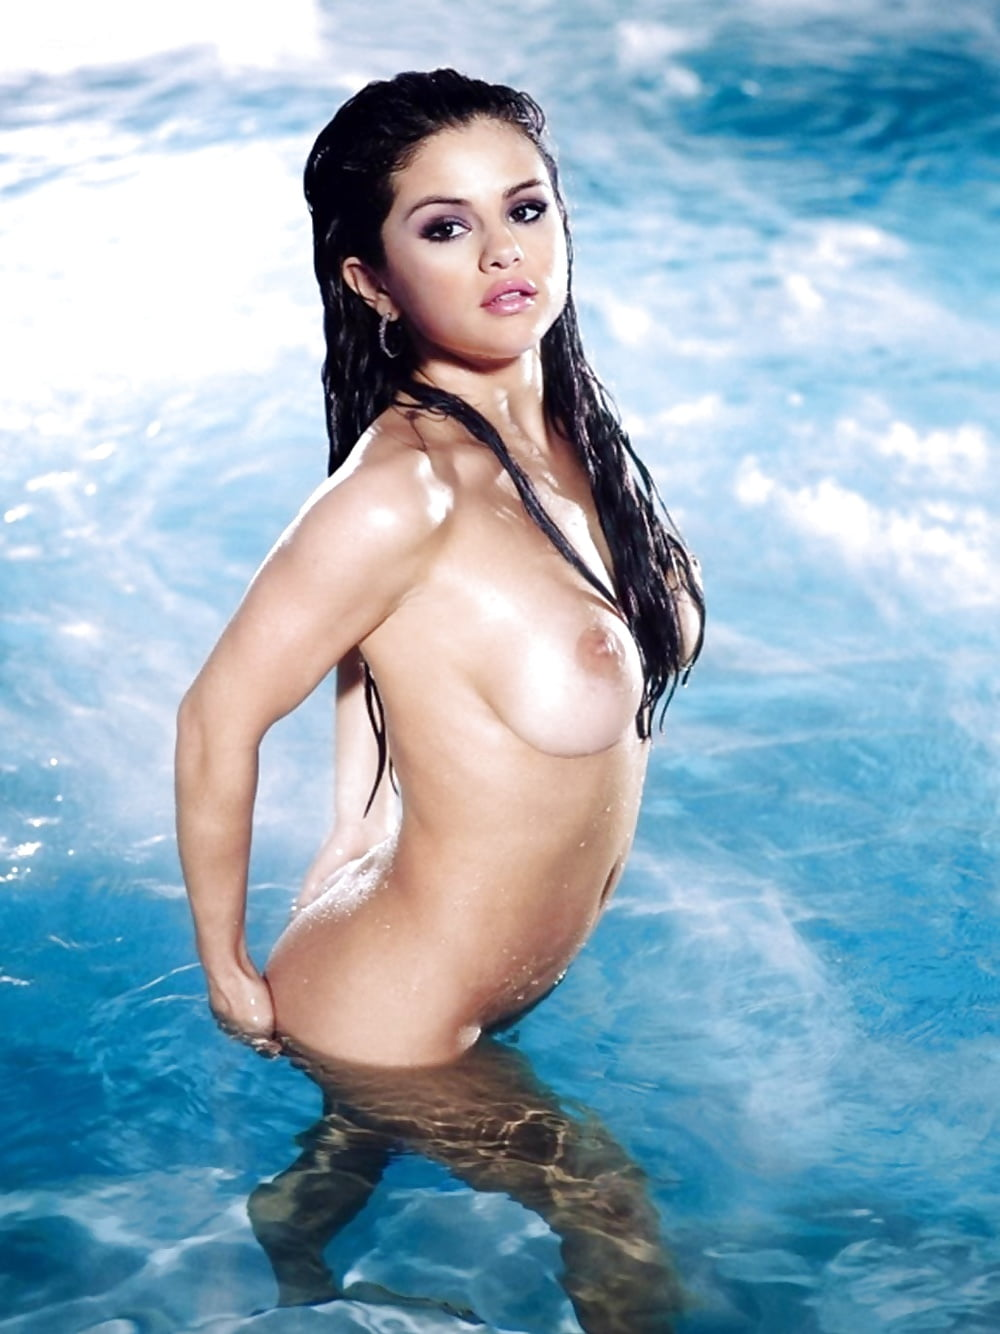 Selena gomez sexi gallery, plus size model naked